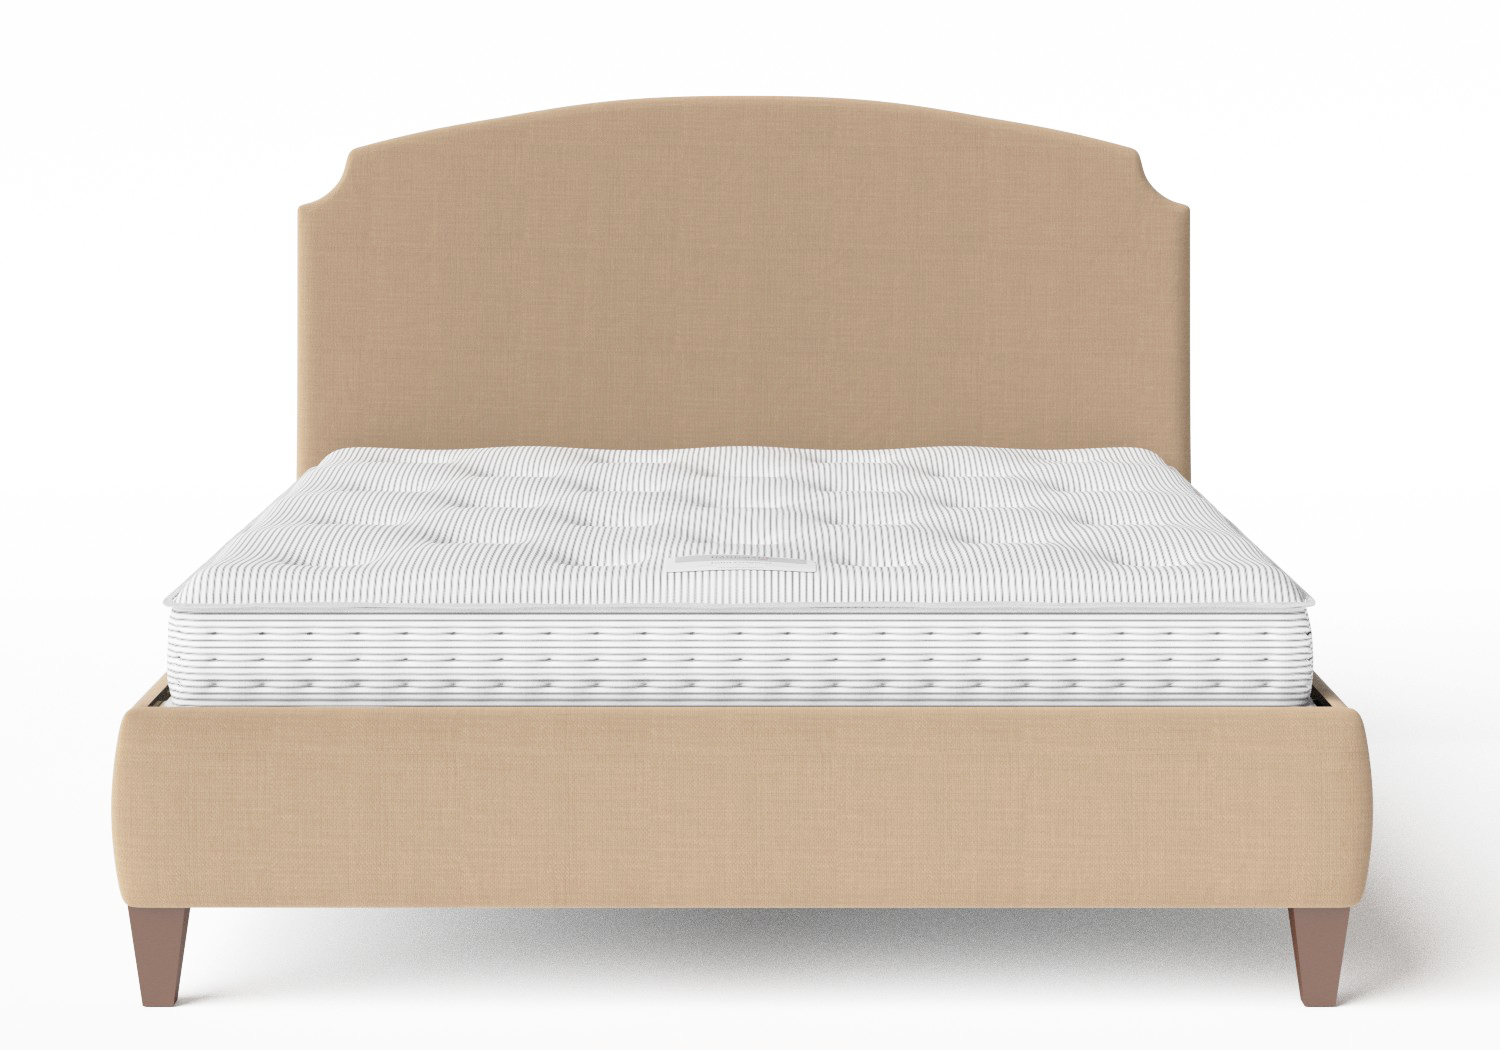 Lide Upholstered Bed in Straw fabric shown with Juno 1 mattress